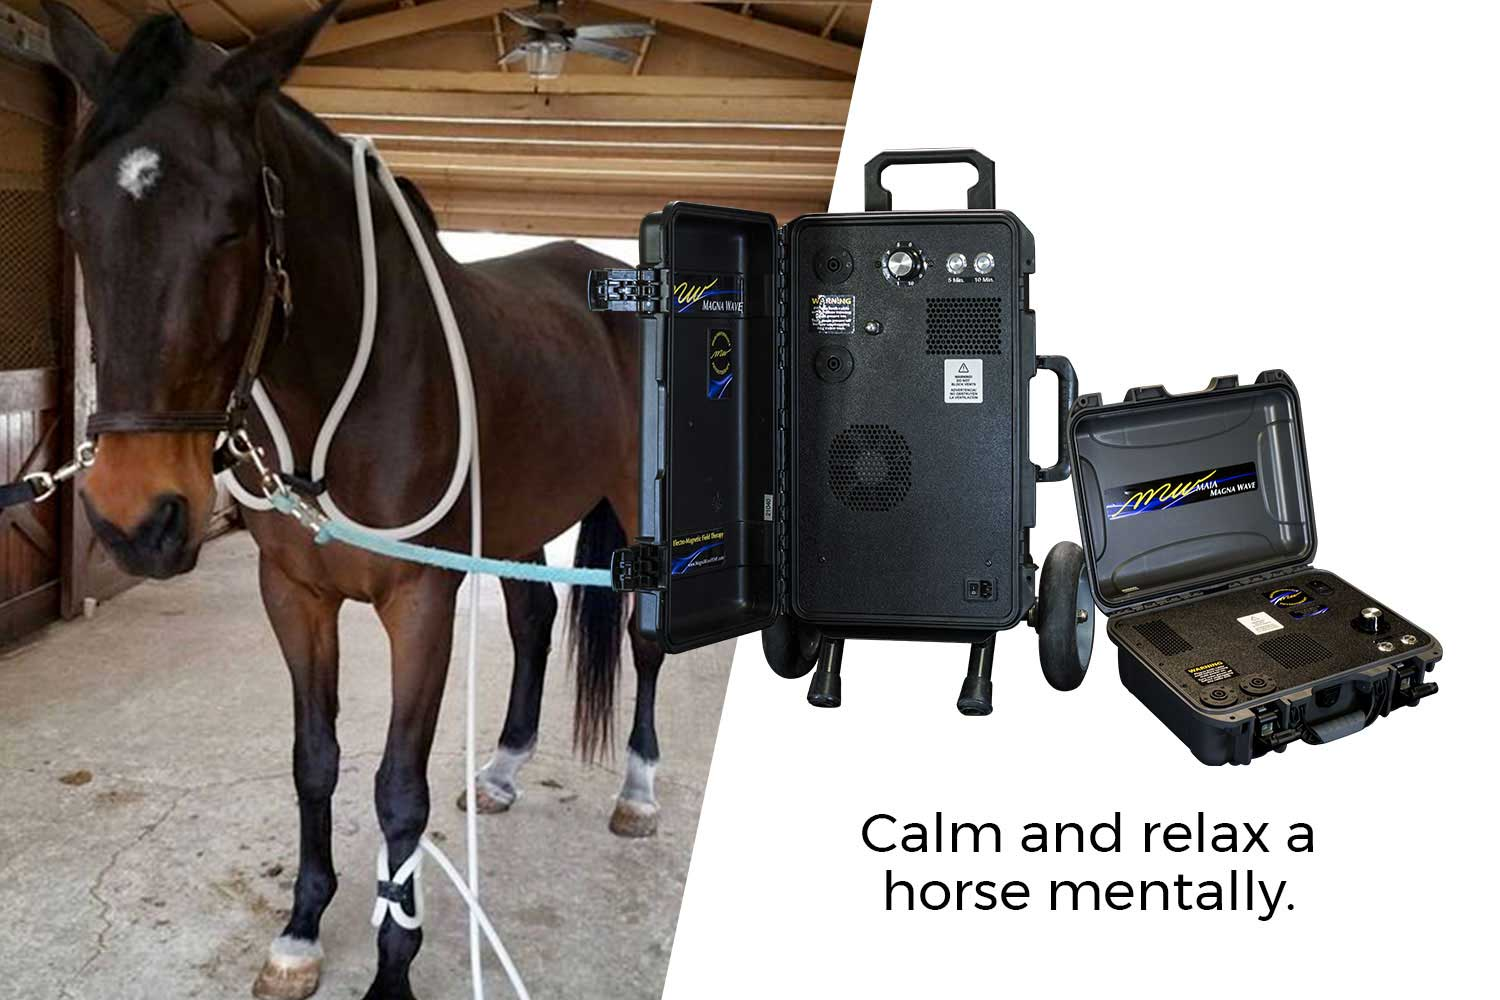 Calm and relax a horse mentally.